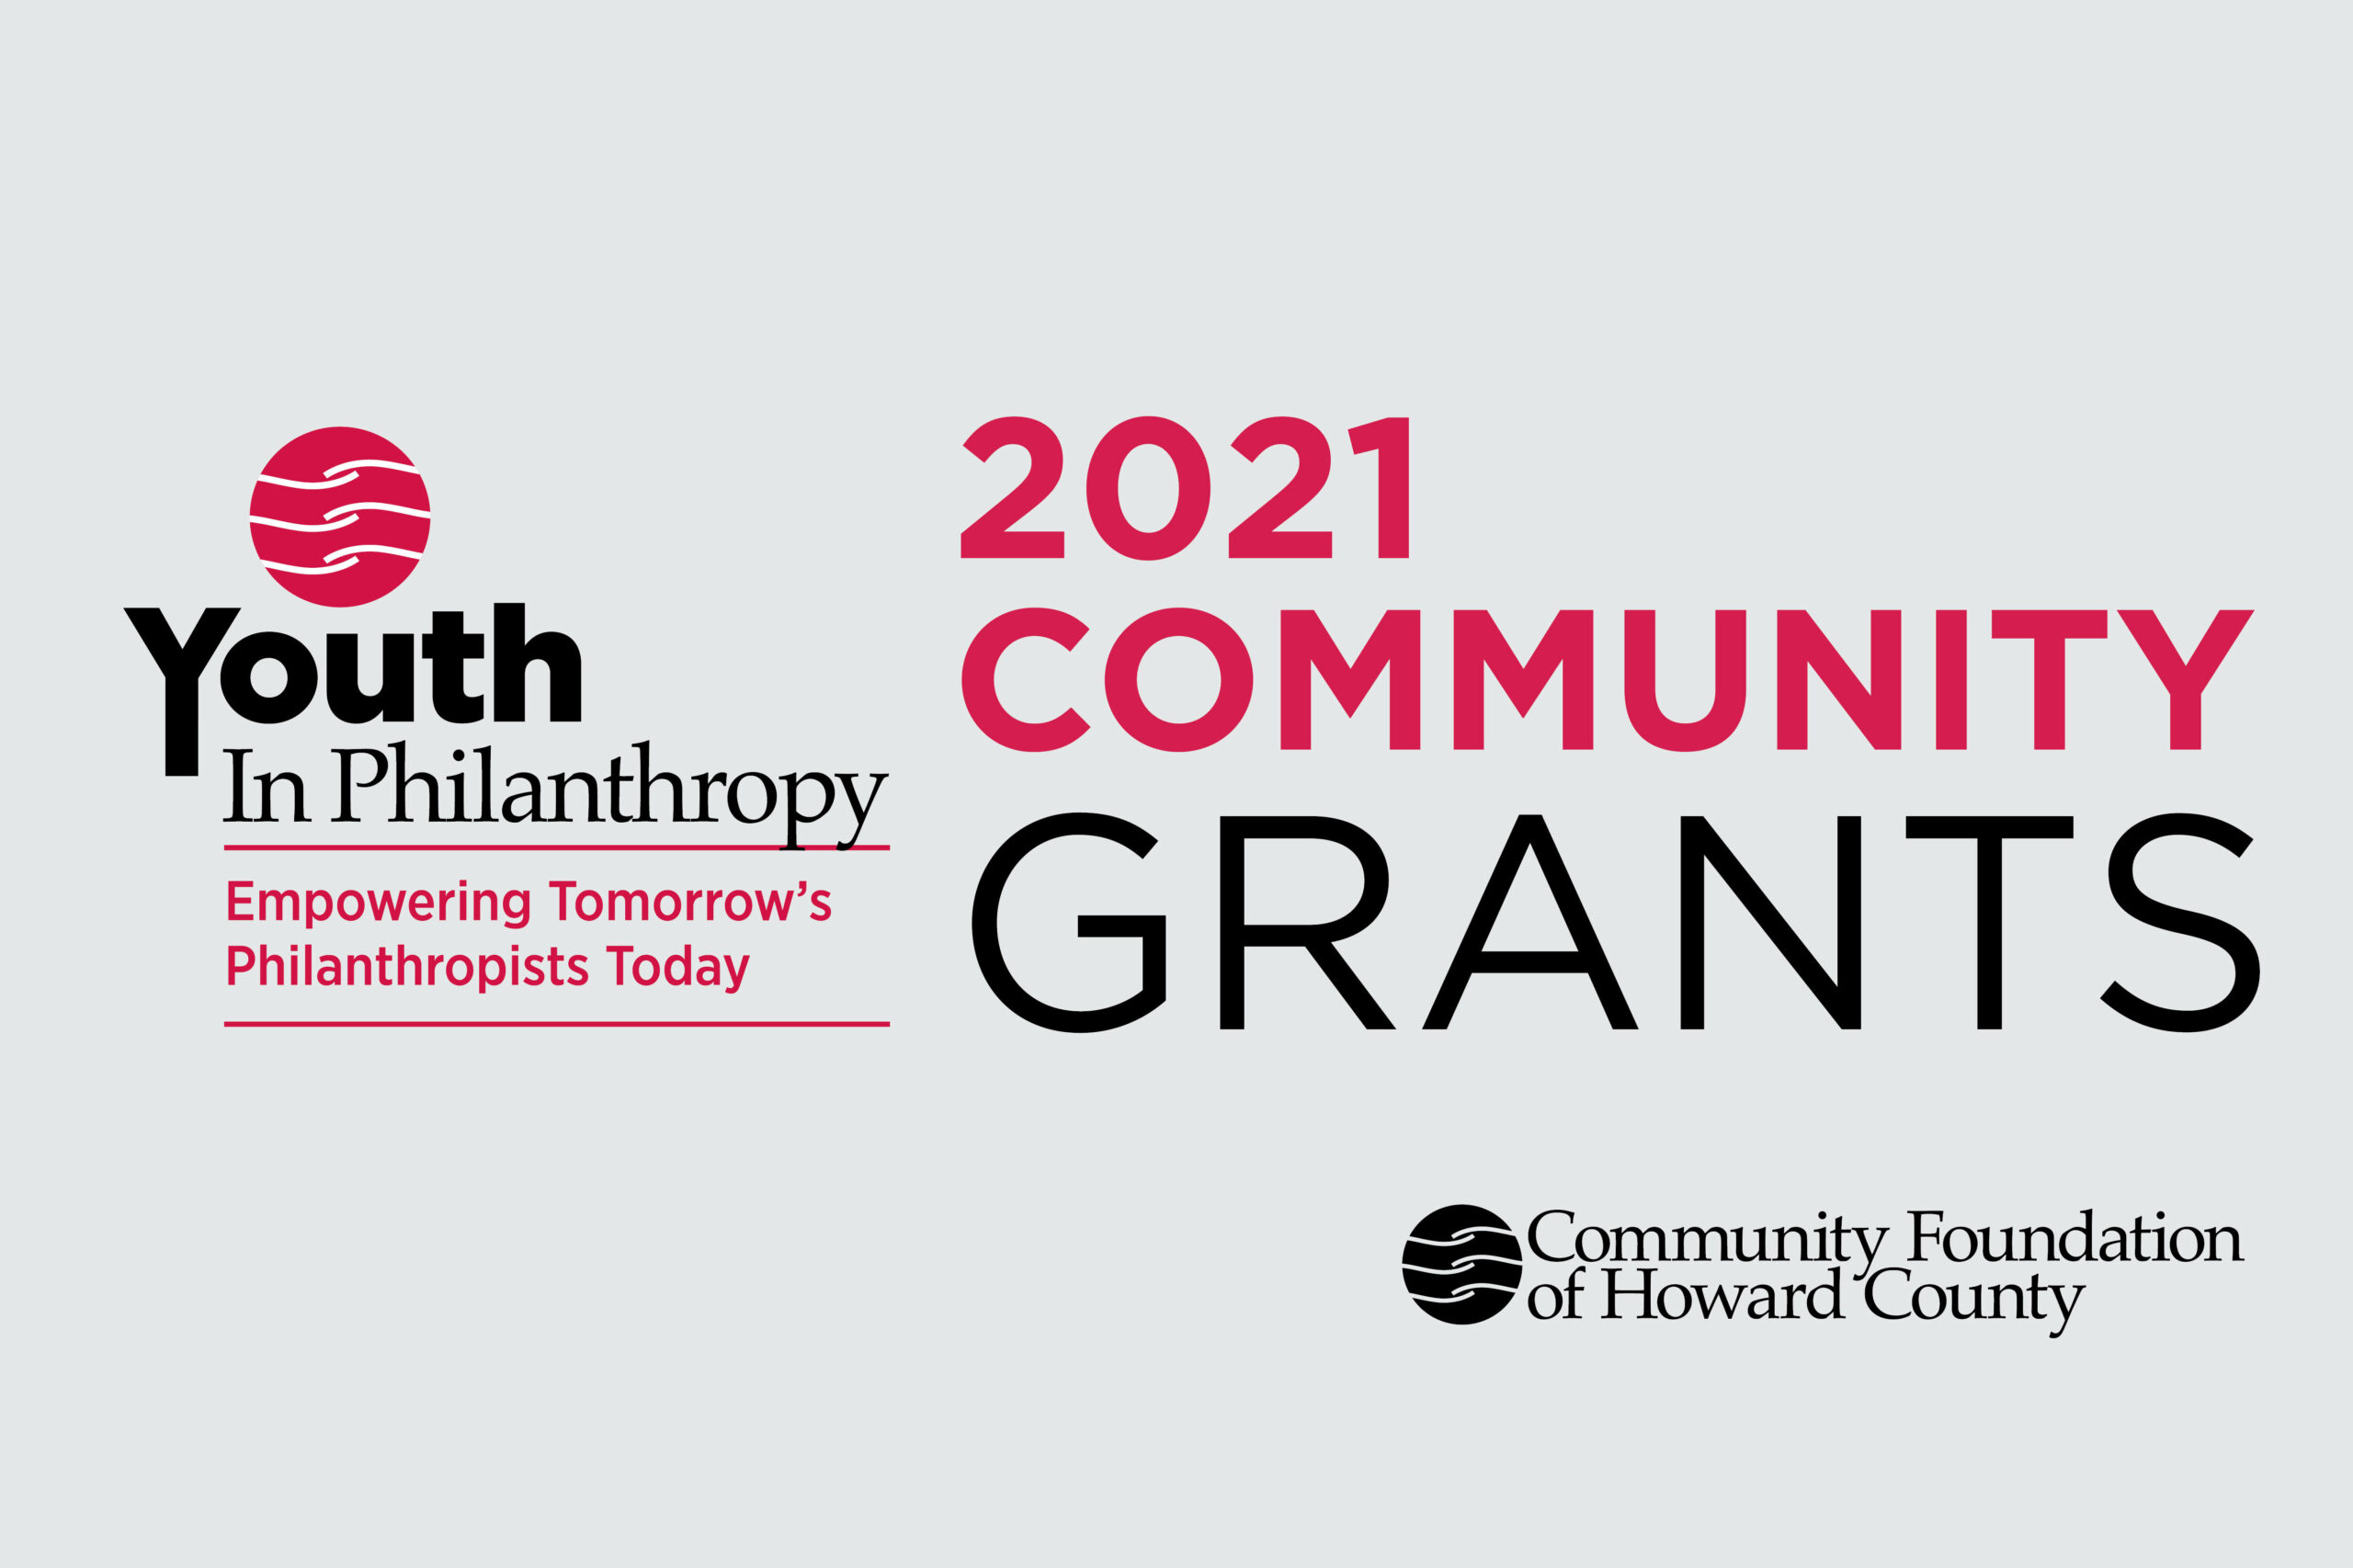 CFHoCo Announces Youth in Philanthropy Community Grant Awards of $25,000